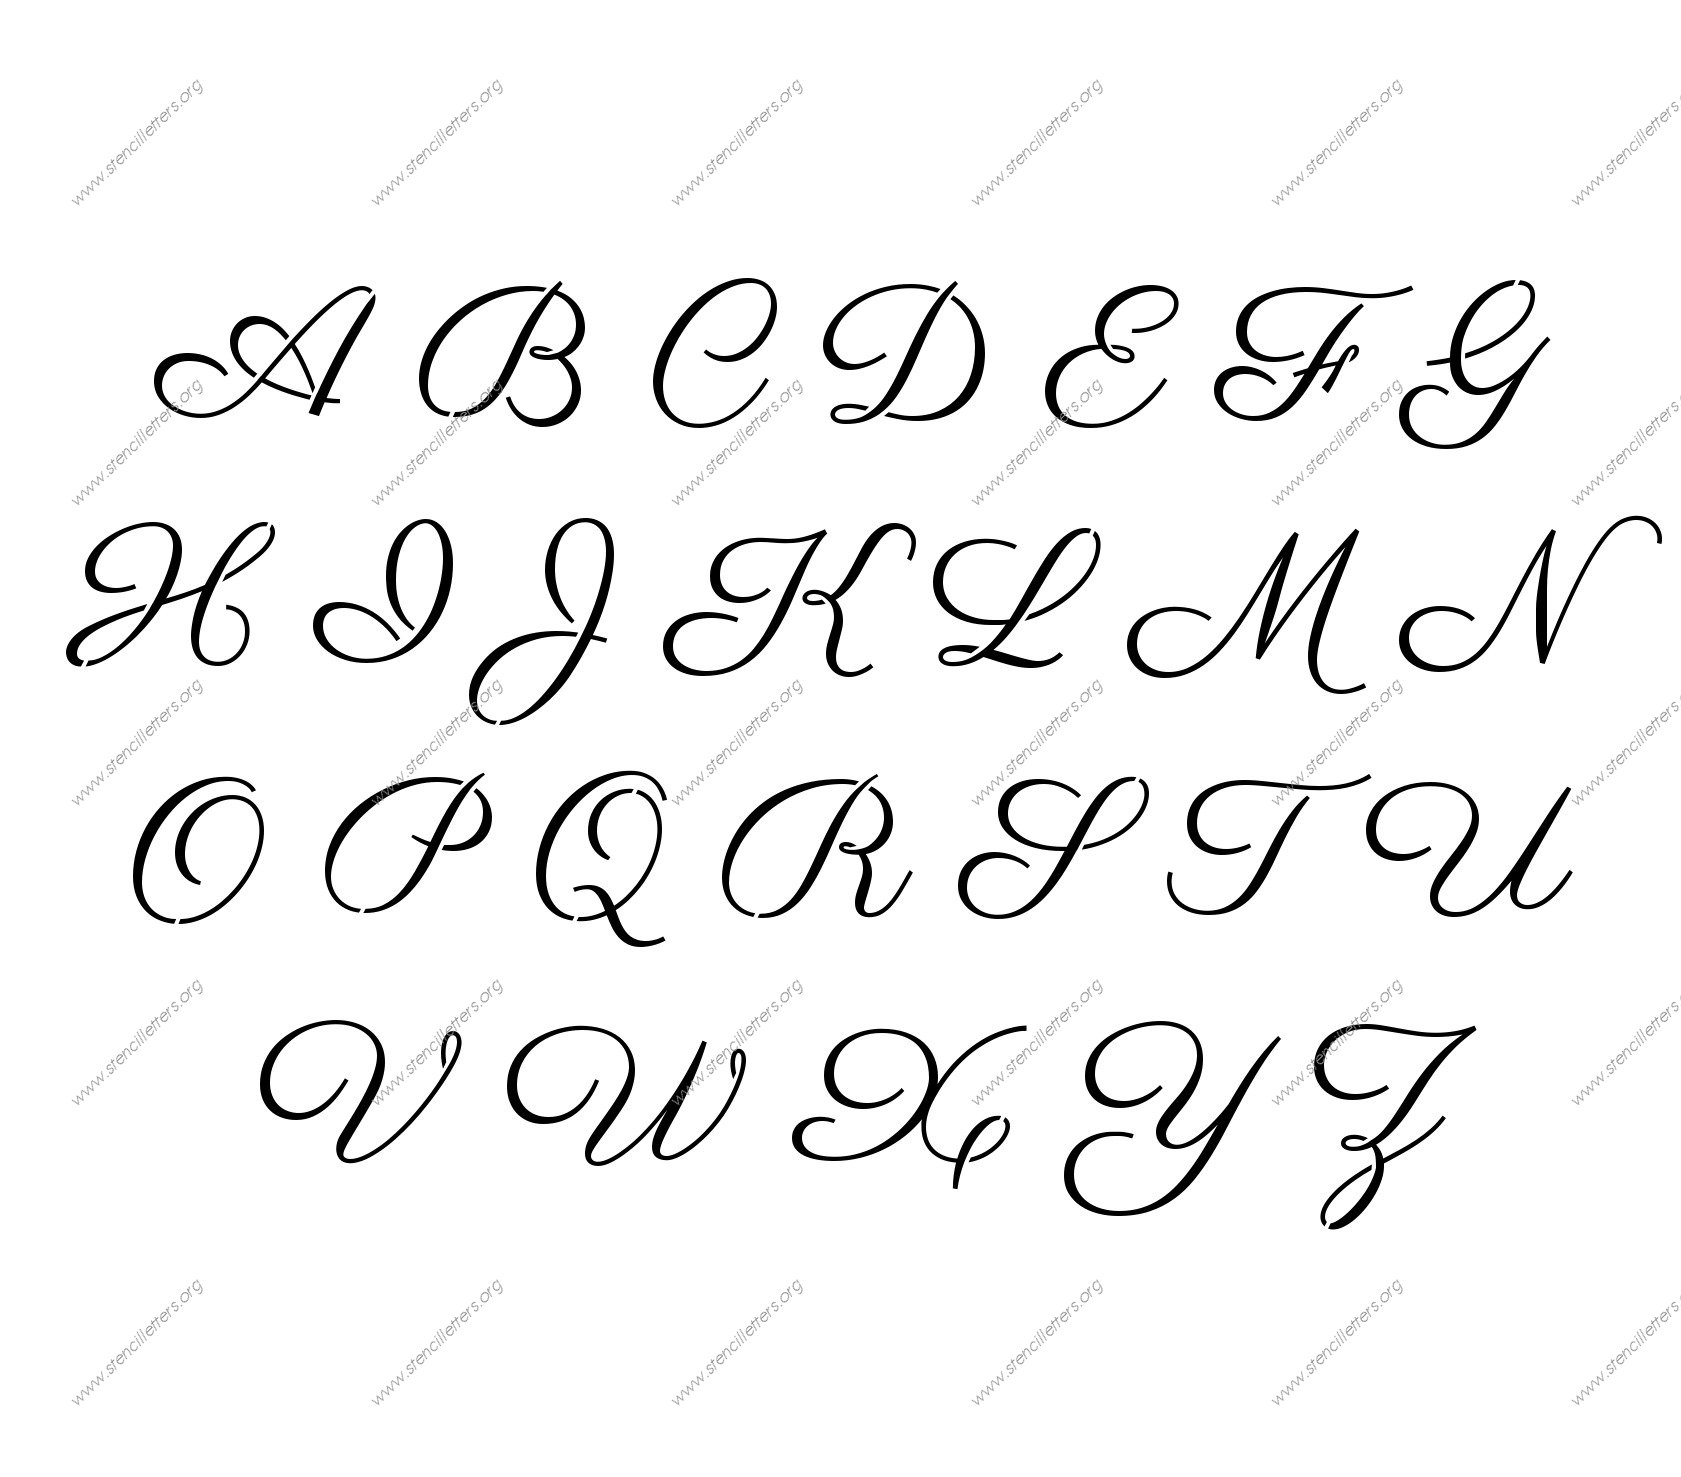 This is an image of Clean Printable Calligraphy Letters